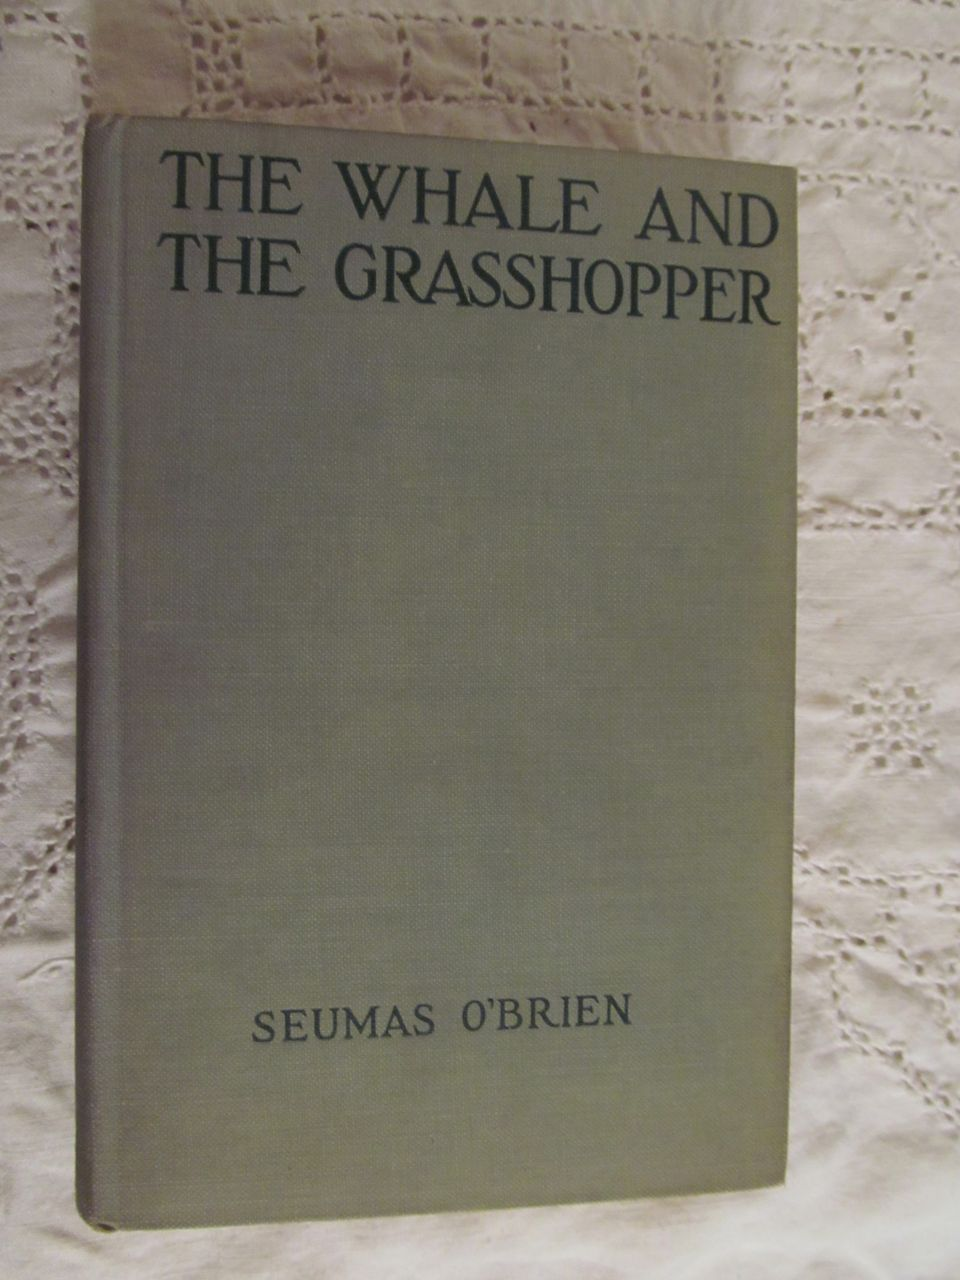 The Whale and the Grasshopper and Other Fables, Seumas O'Brien, 1916